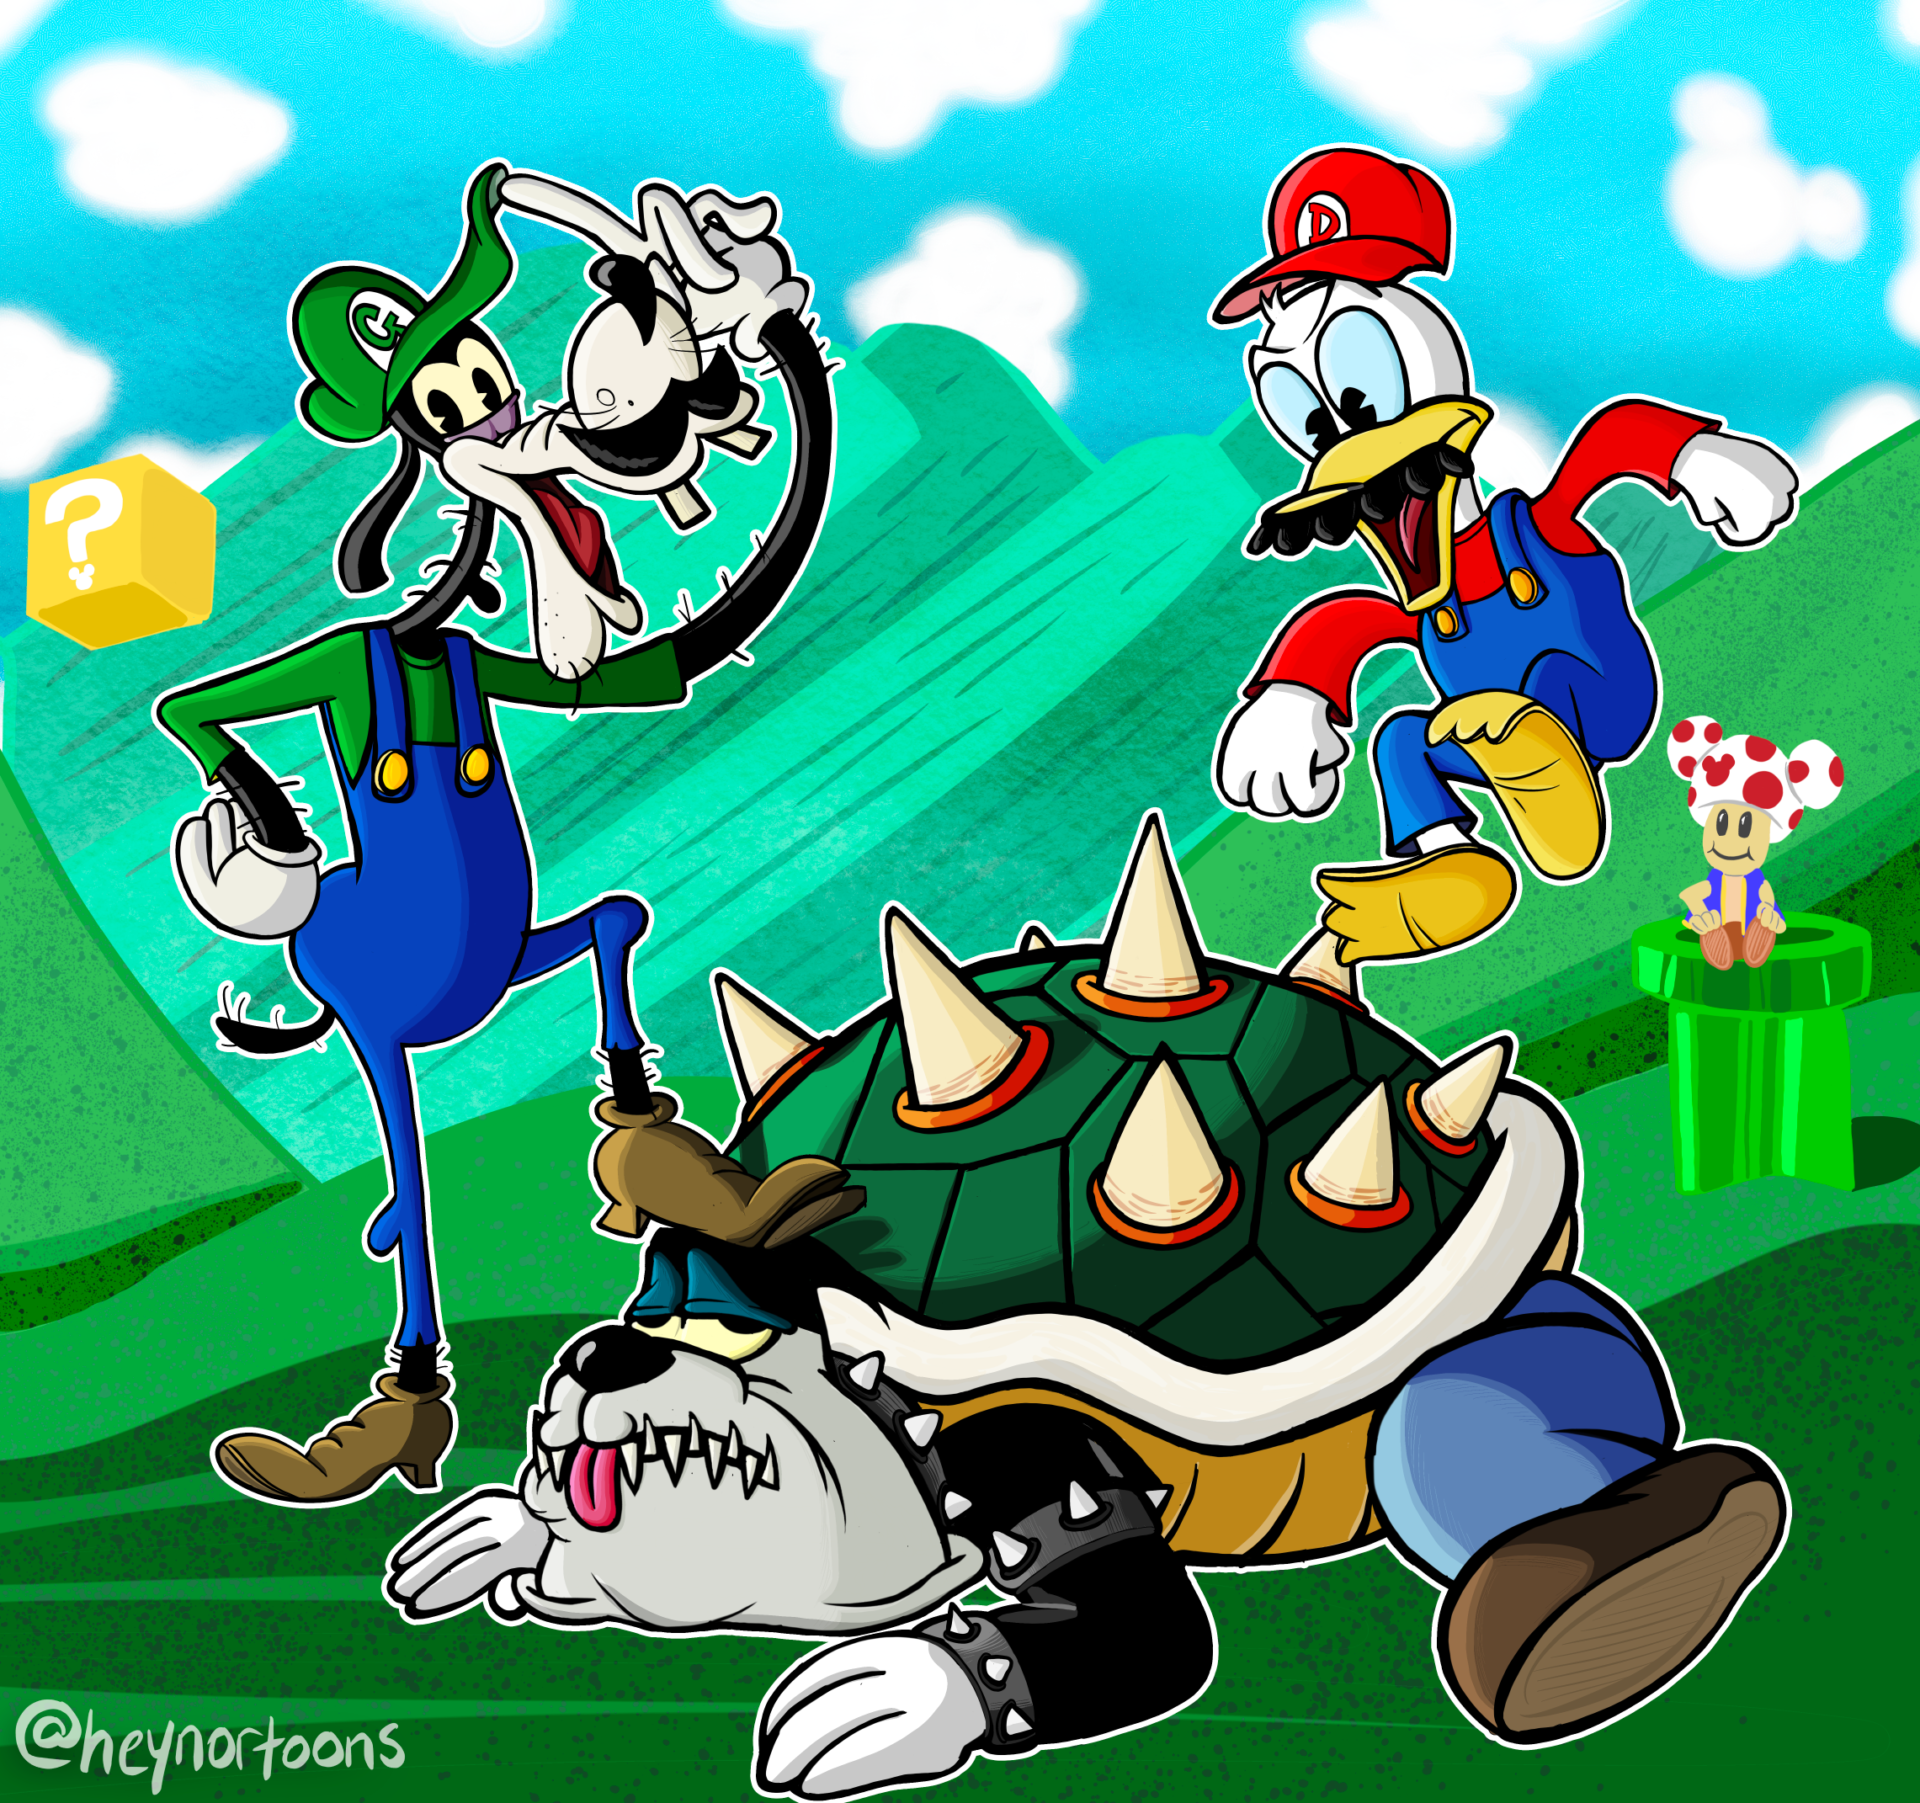 Goofy, Donald and Pete reimagined as Mario Brothers characters